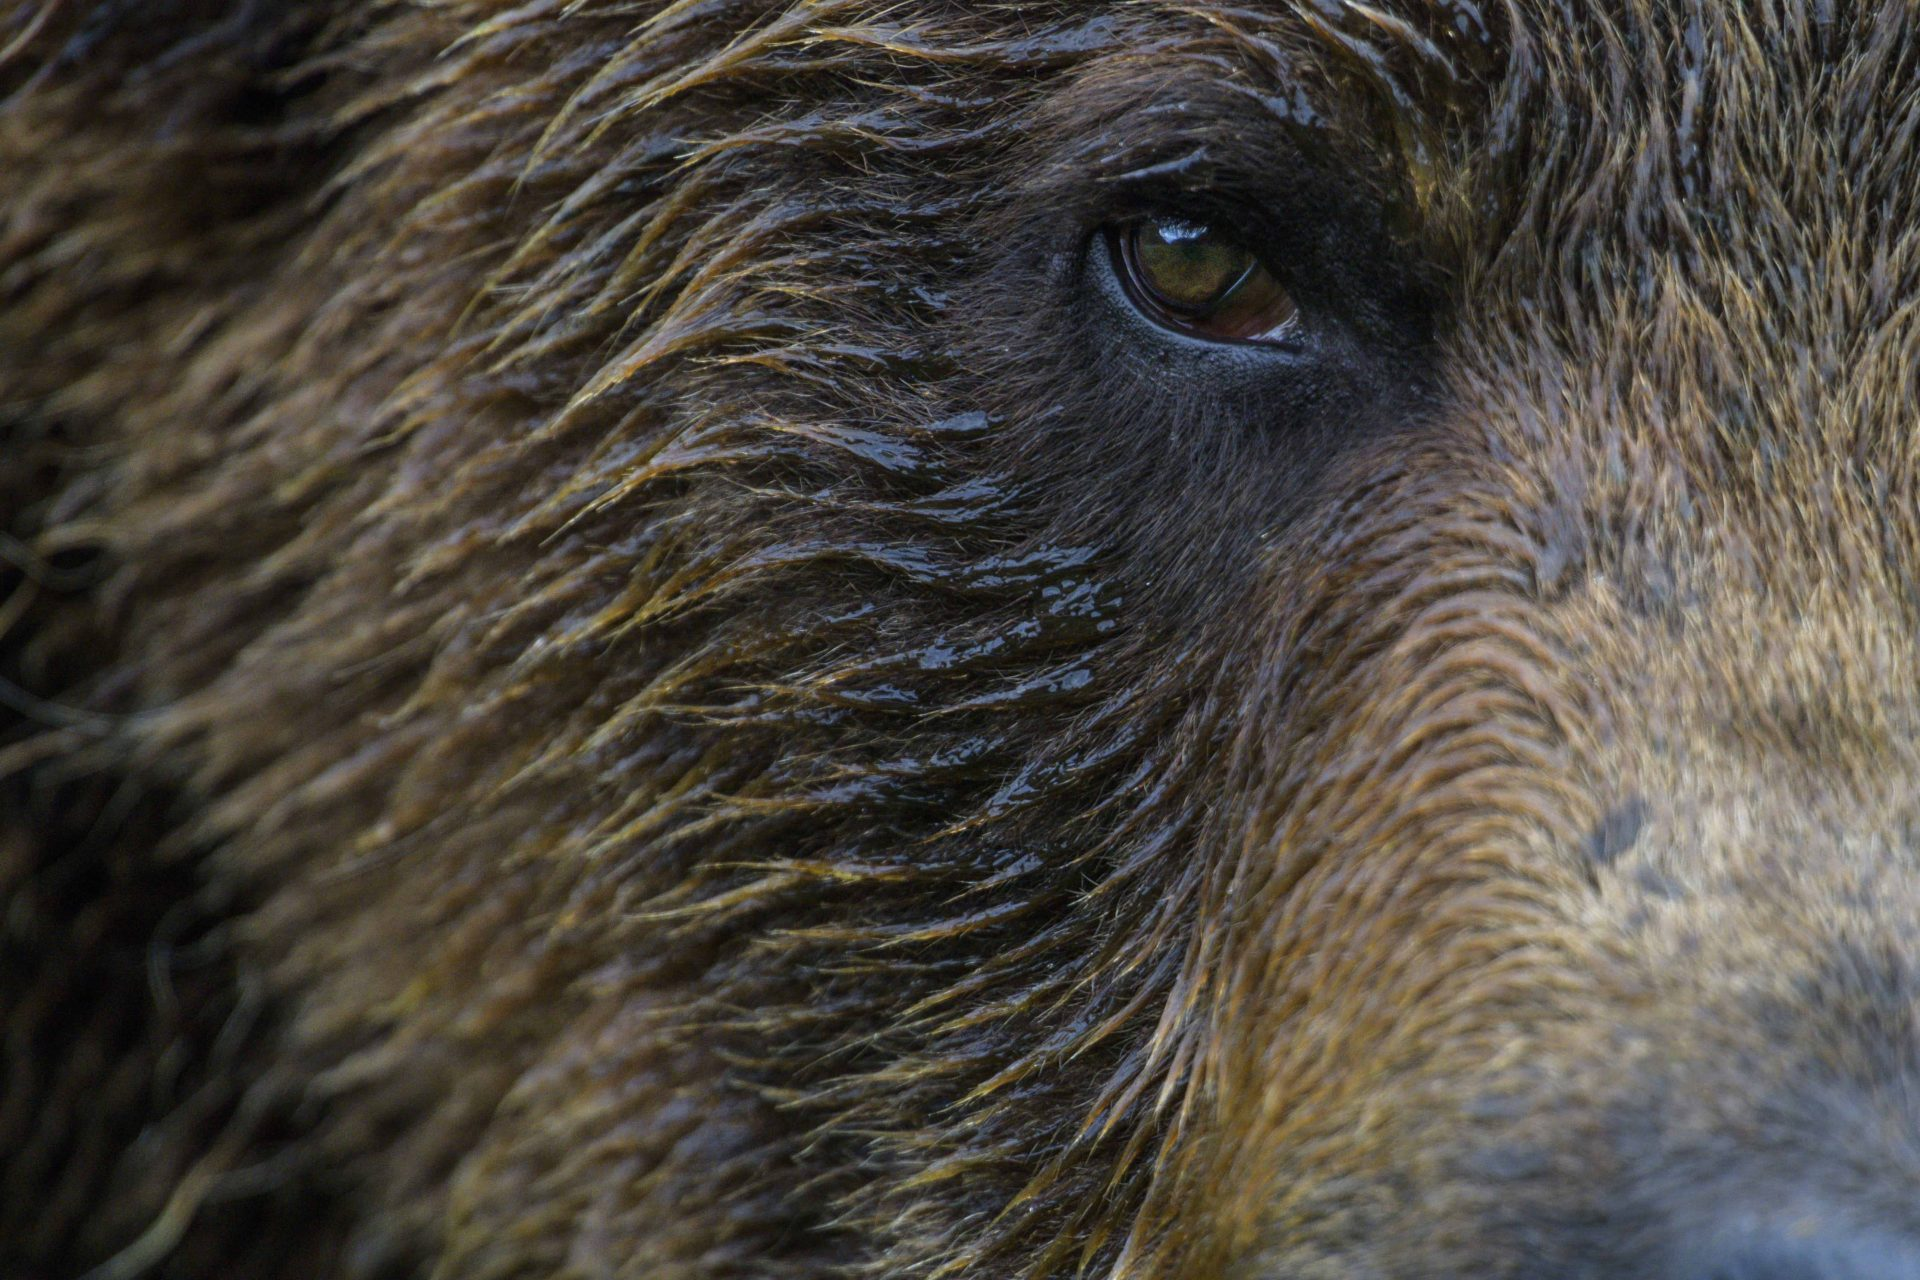 Close up of Grizzlies eye